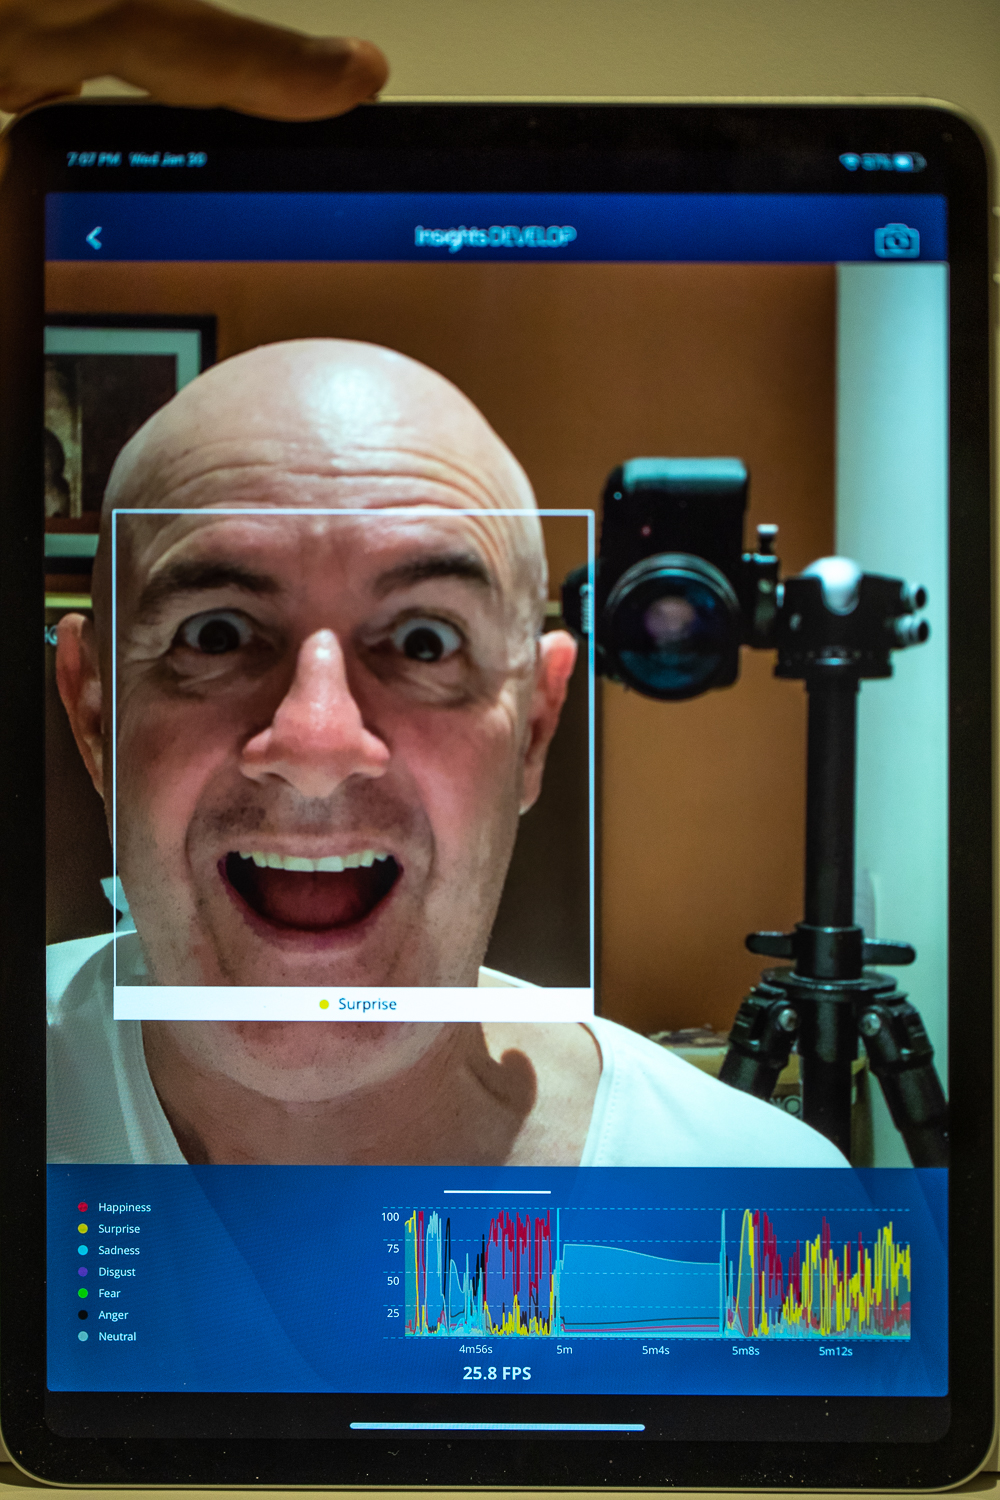 Expression identifier and emotion tracking graph